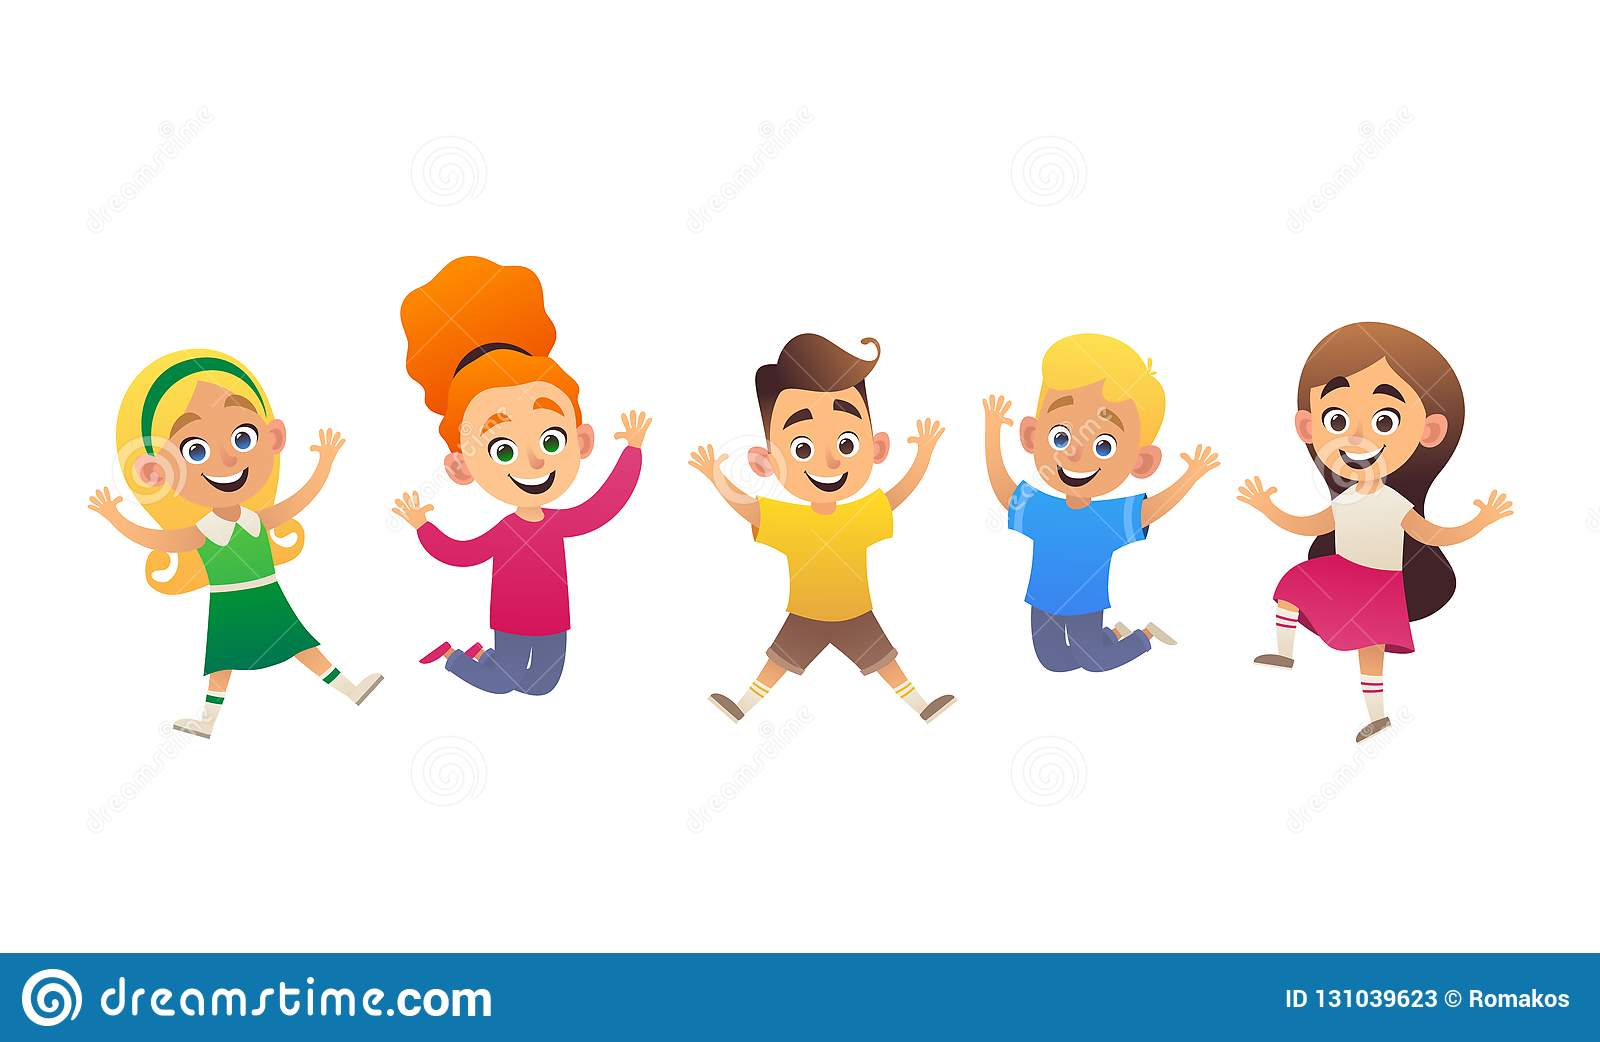 Vector Illustration Of Funny Cartoon Children Jumping And Having Fun Stock Vector Illustration Of Love Background 131039623